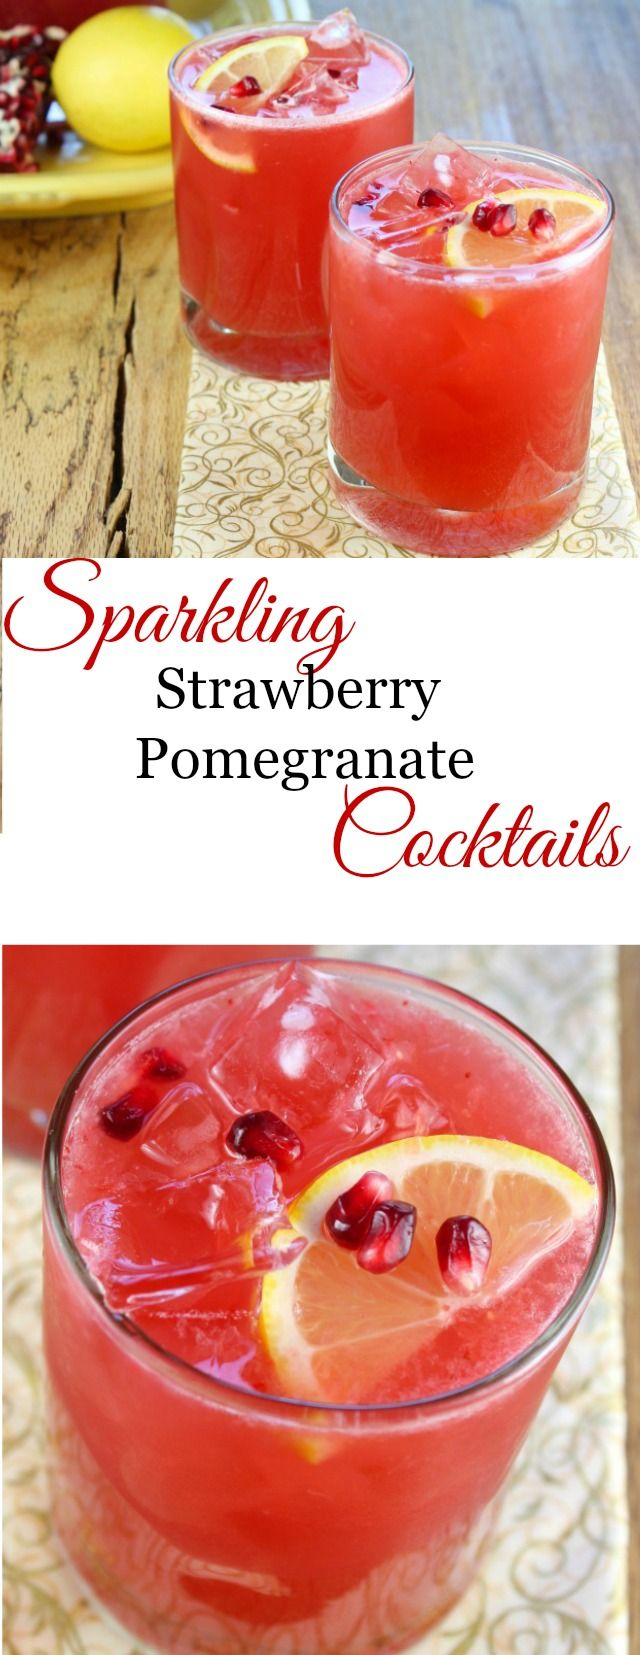 ... Cocktails on Pinterest   Cranberry margarita, Cocktails and Martinis